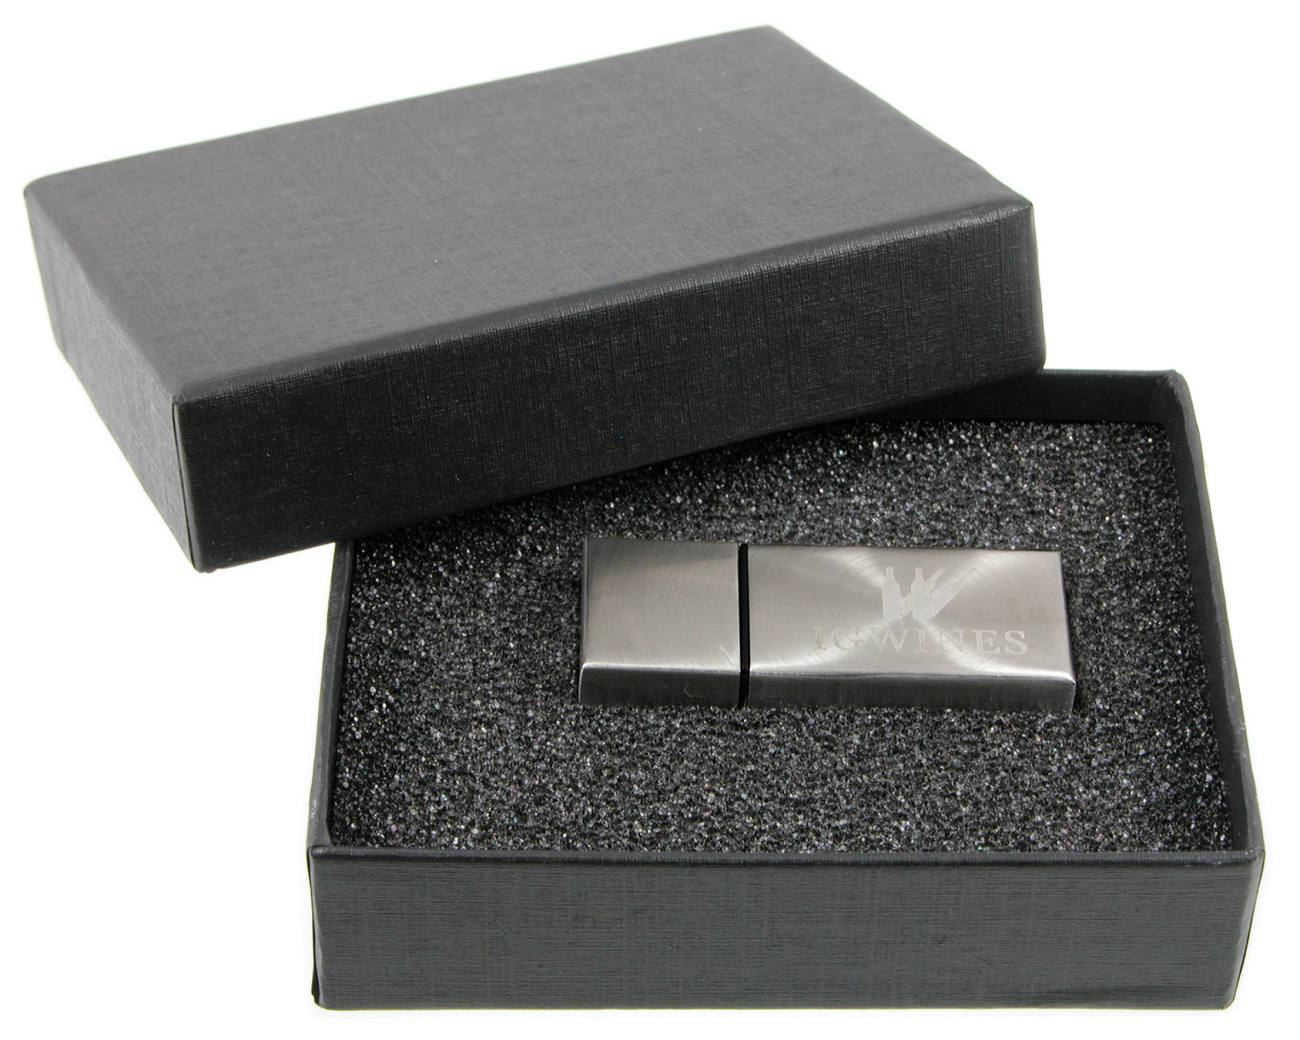 Usb Flash Drive Engraved Stainless Steel Black Presentation Box Cd277